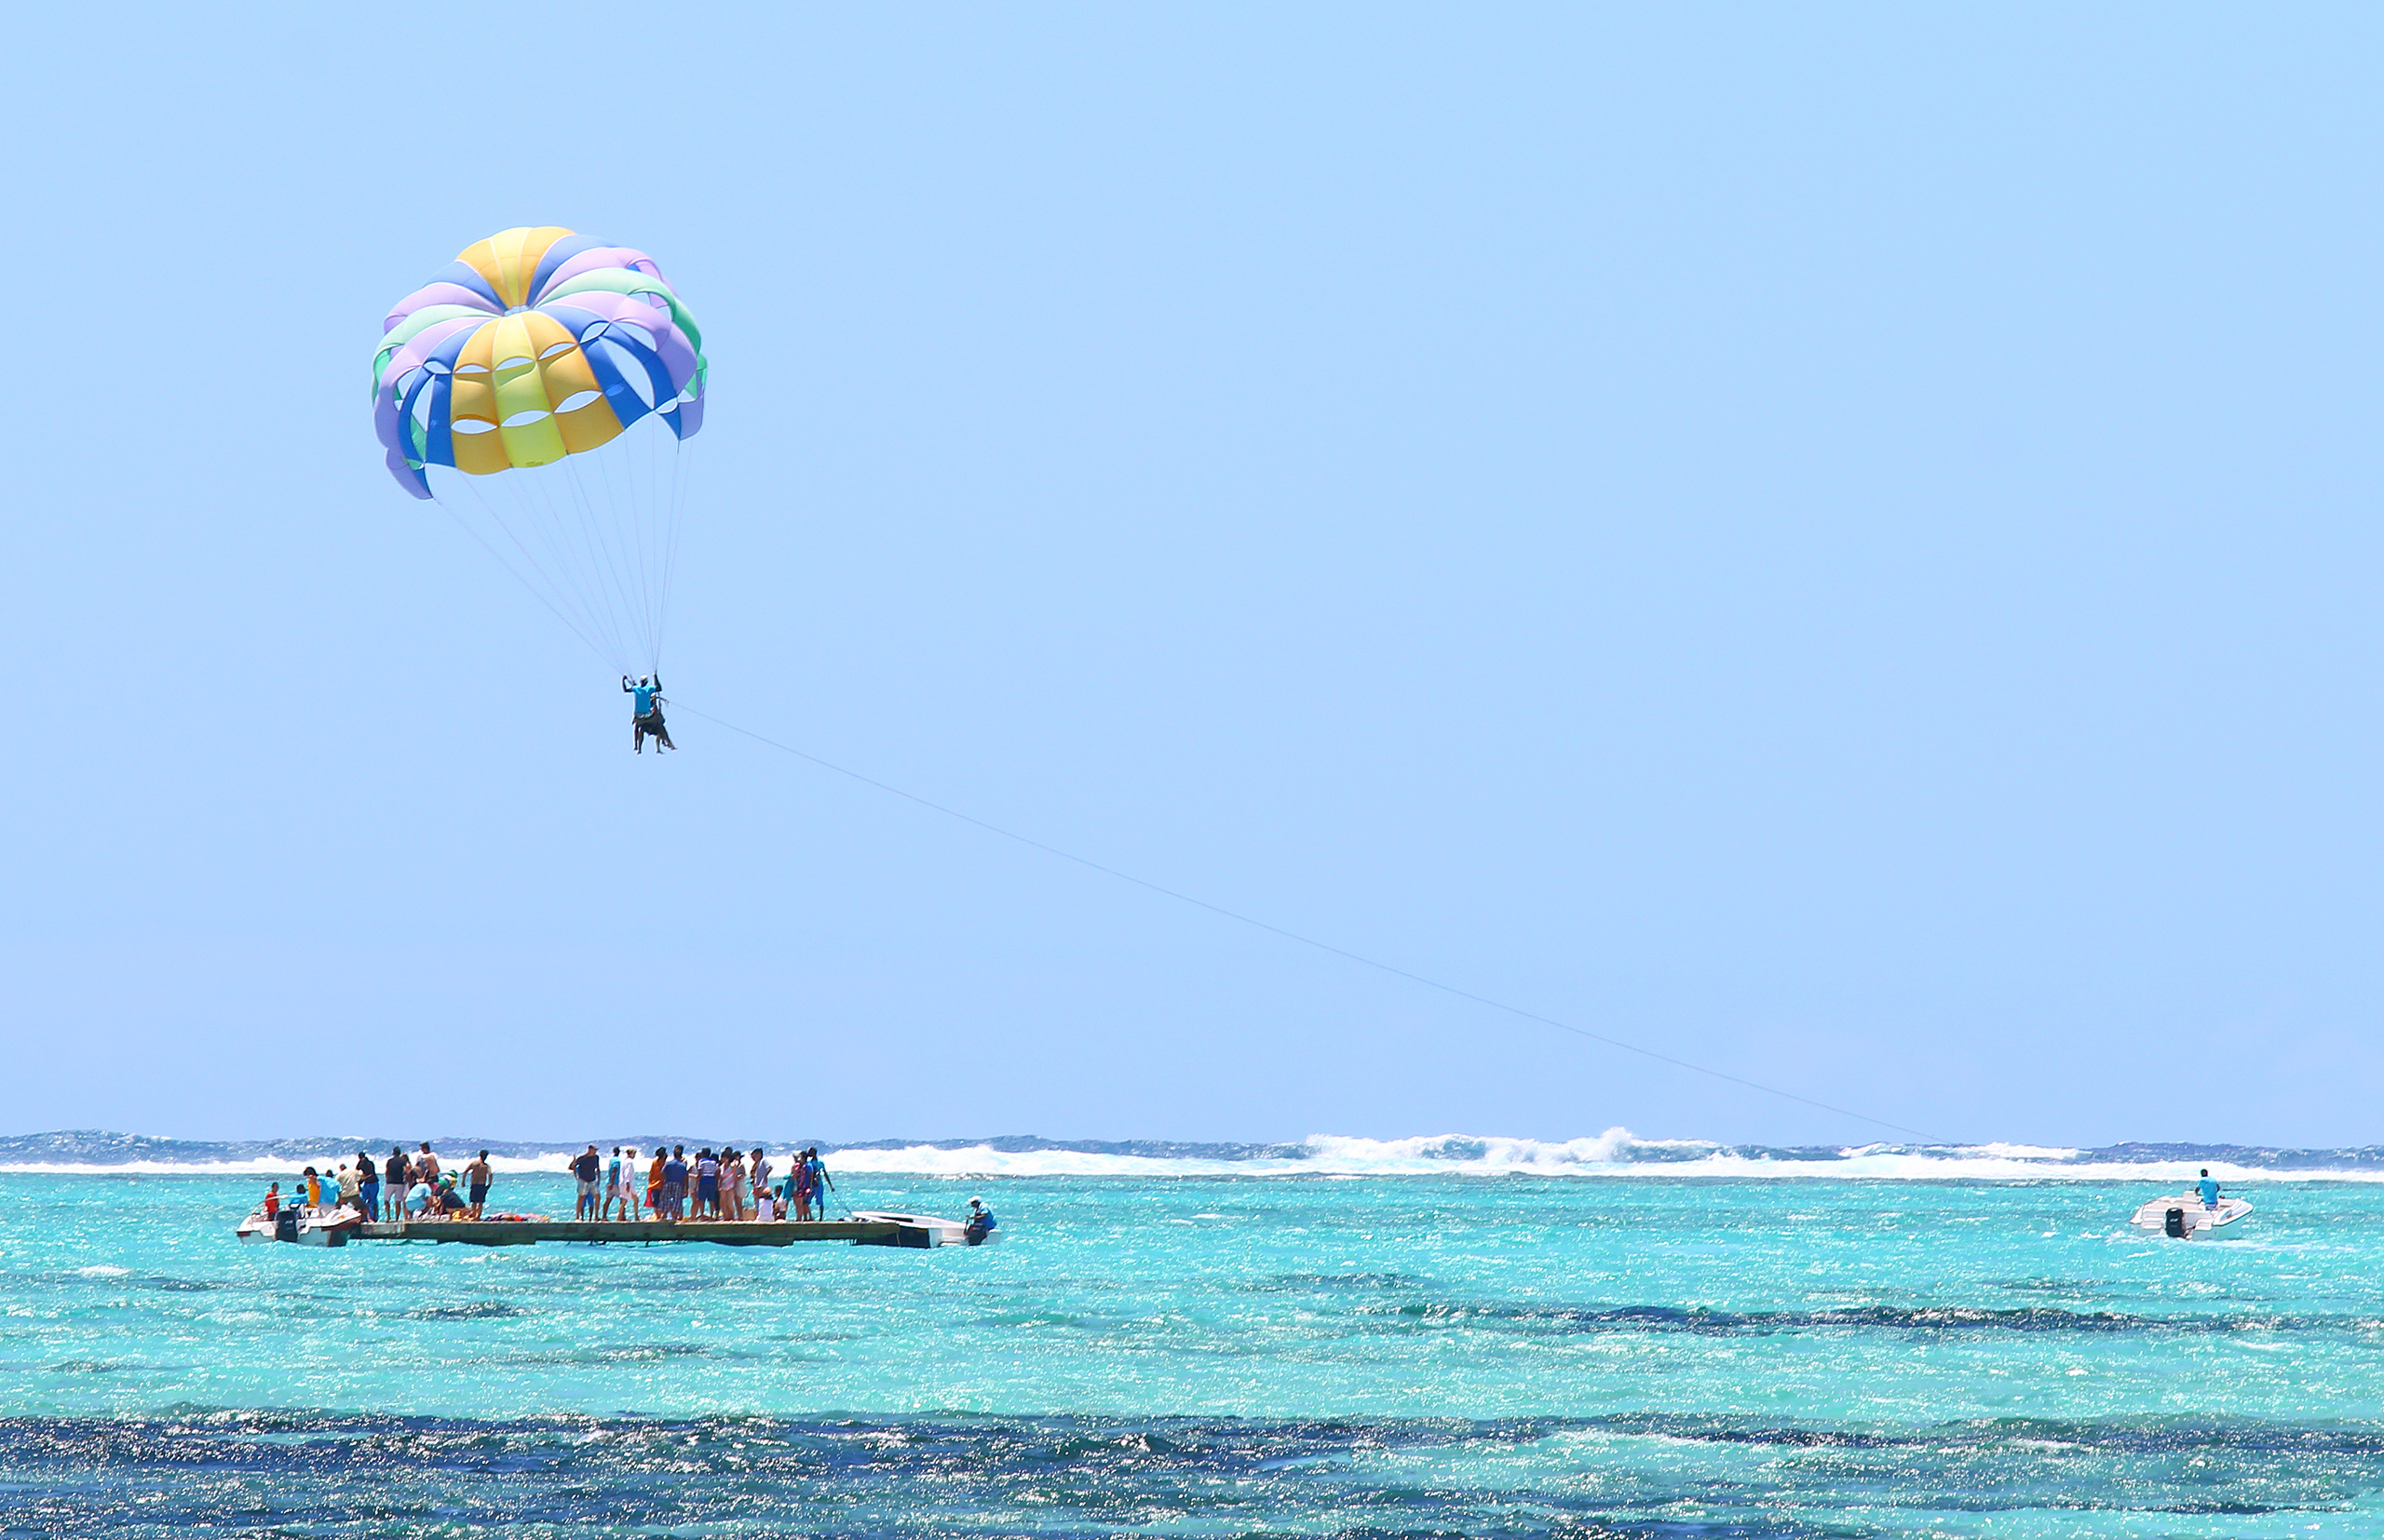 Parasailing at Ile aux cerfs showing platform with tourists and a parasail